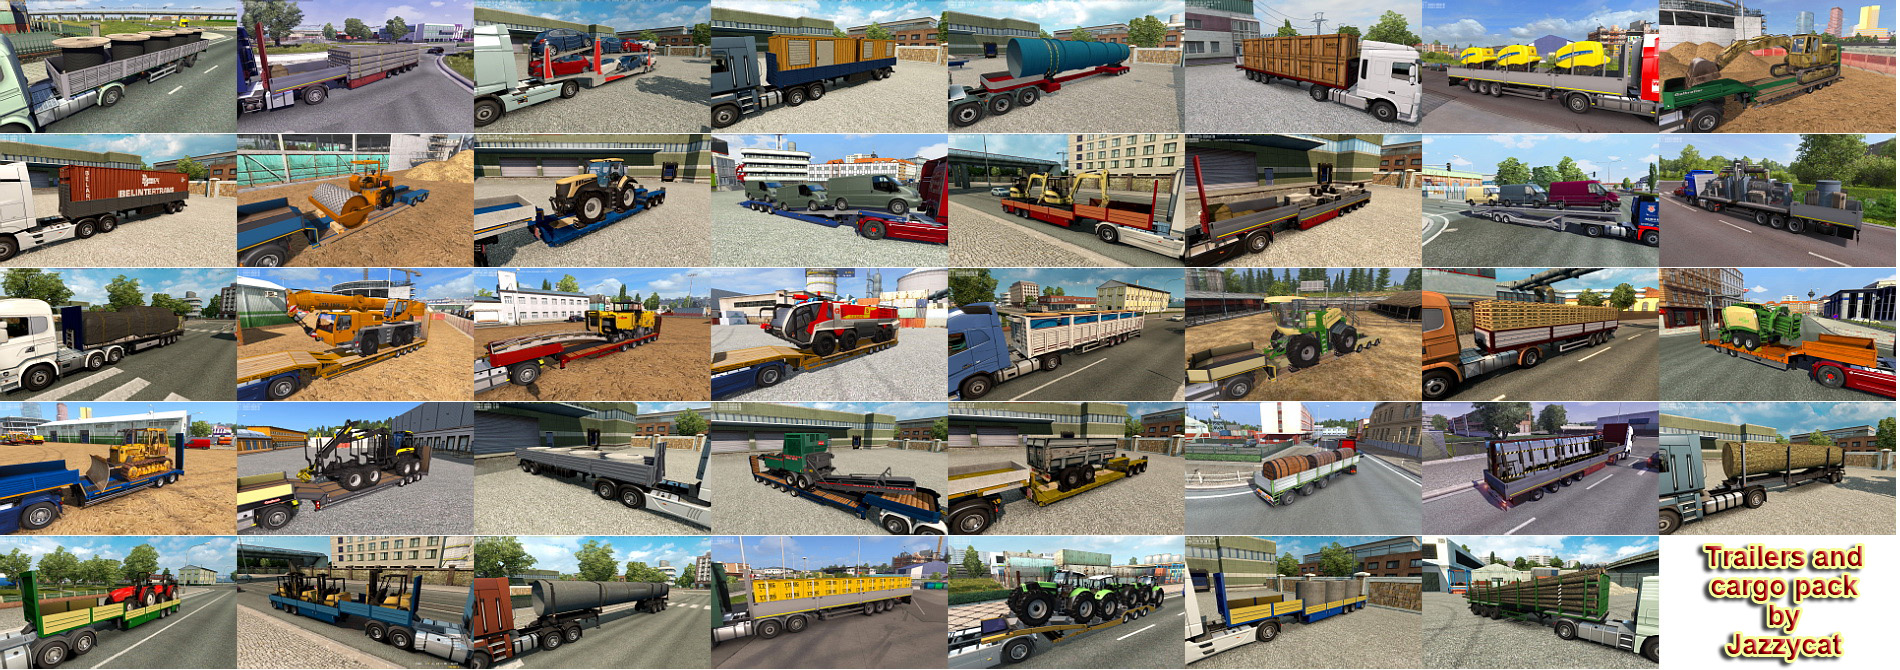 Trailers and Cargo Pack v6.9